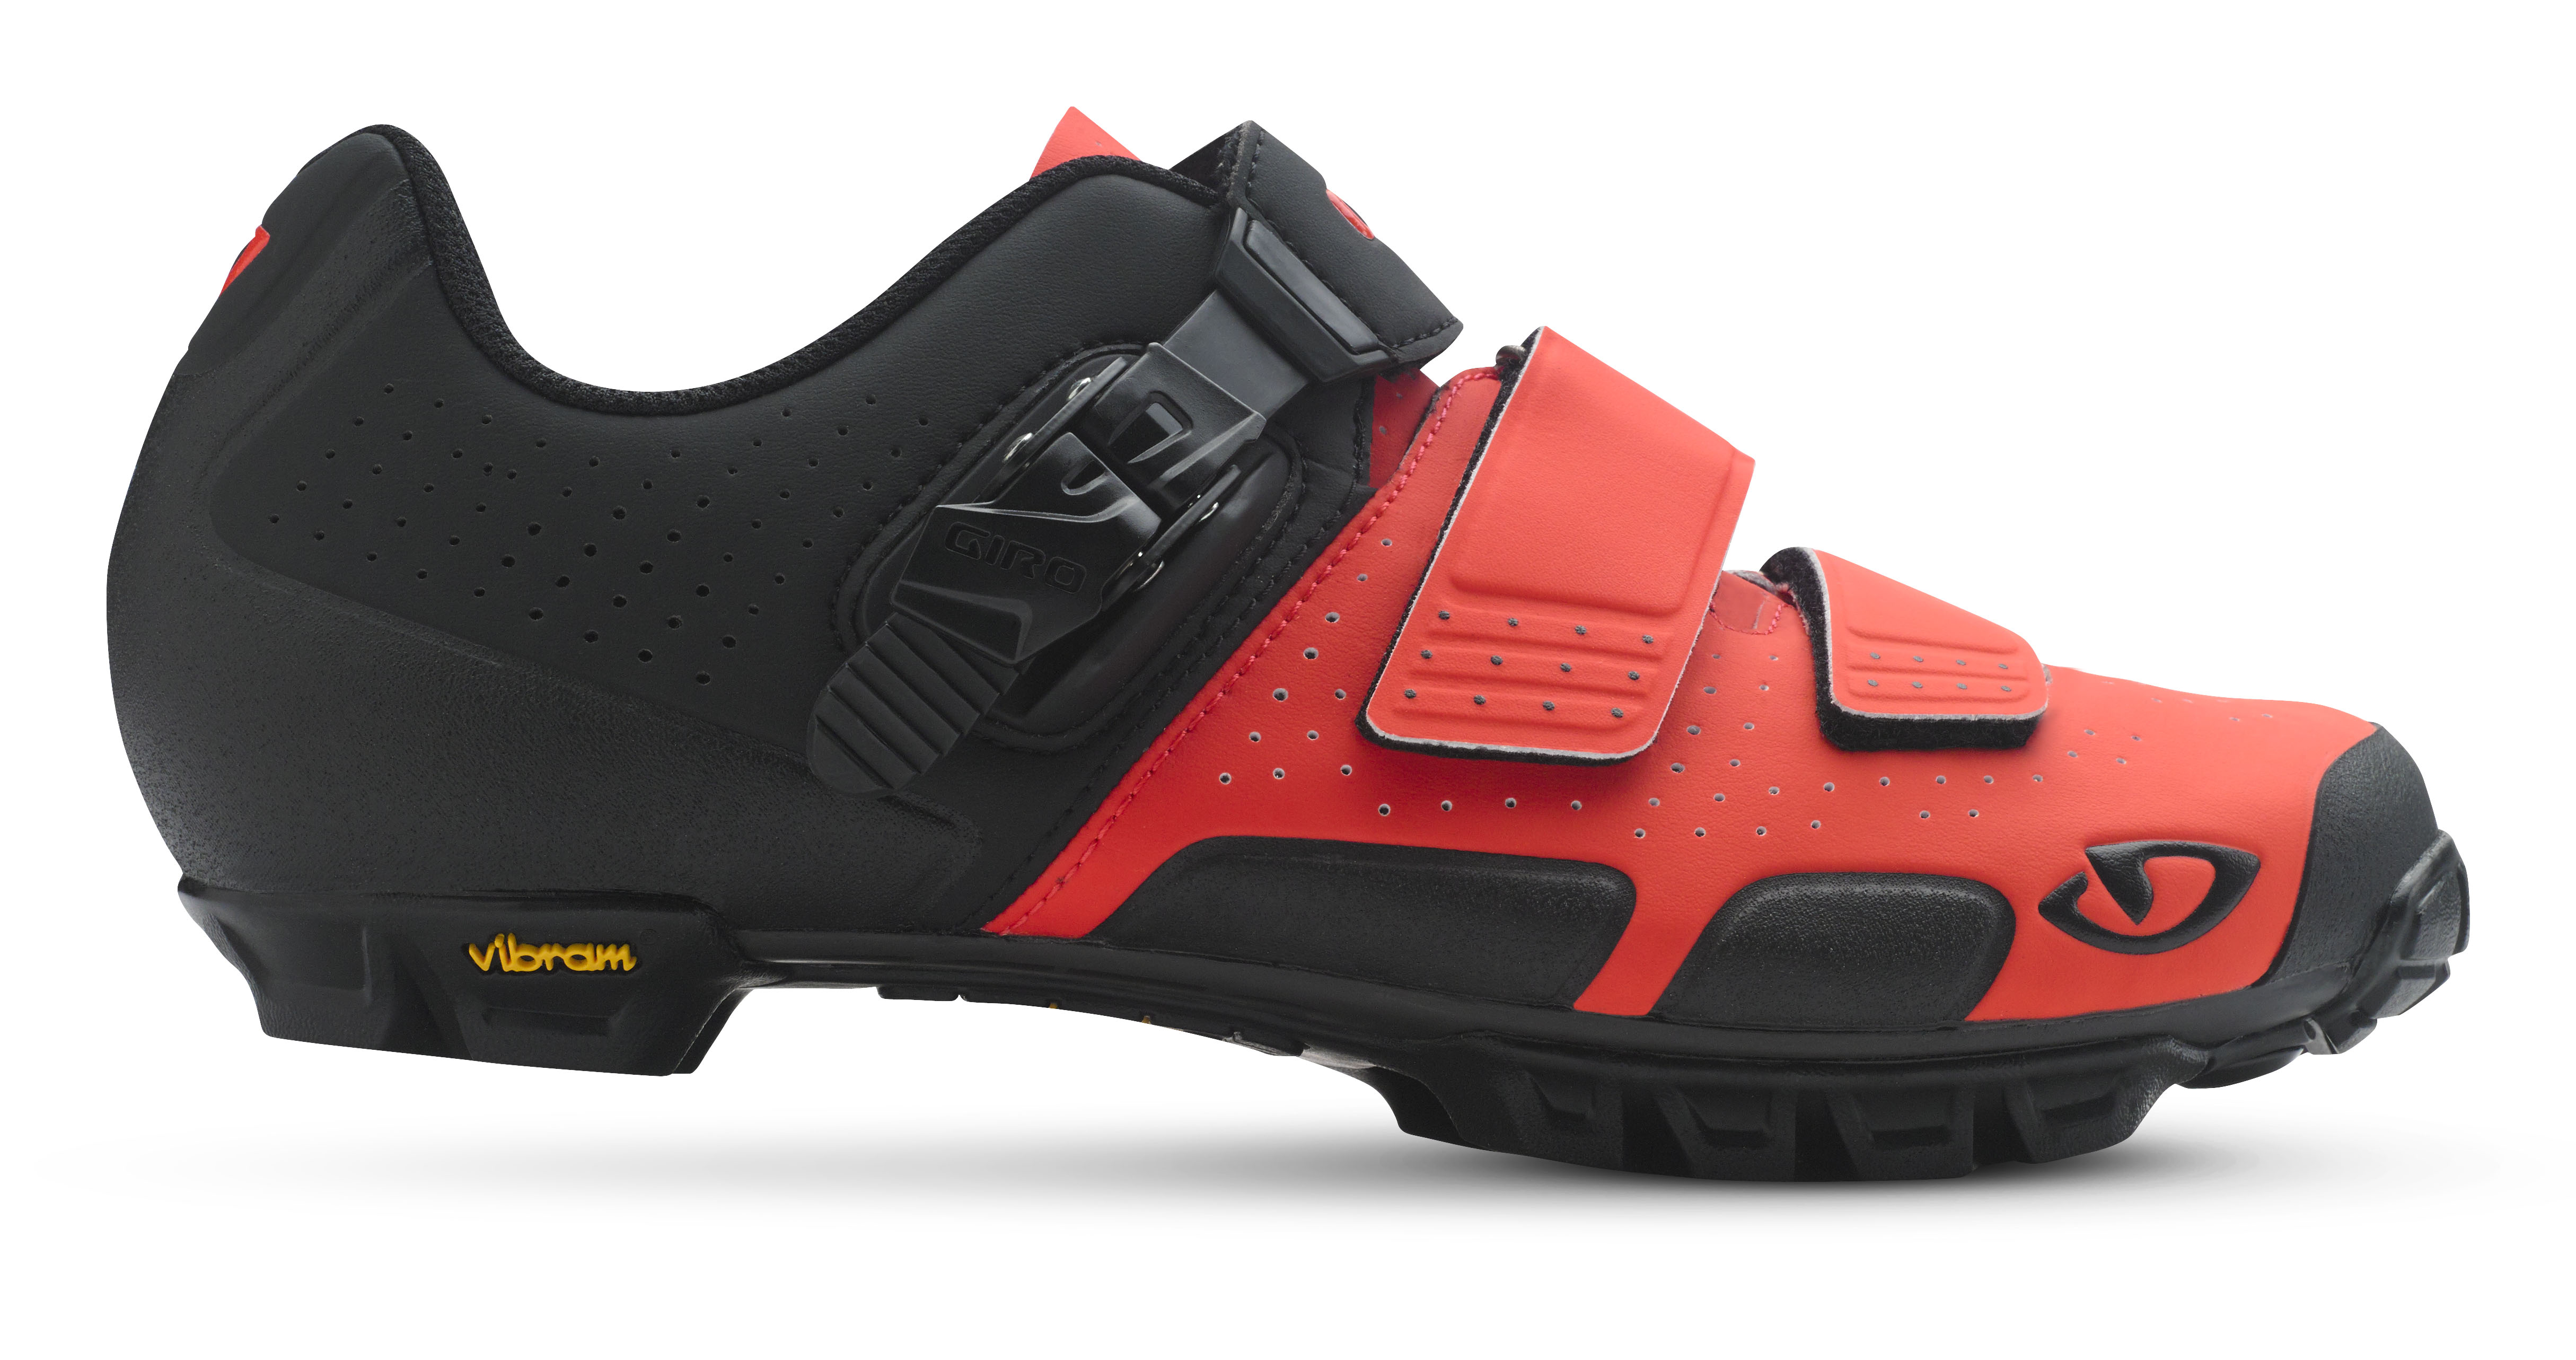 Giro cykelsko Code VR70 Ver/So 45 Vermillion/Sort VERMILLION 45 | Shoes and overlays